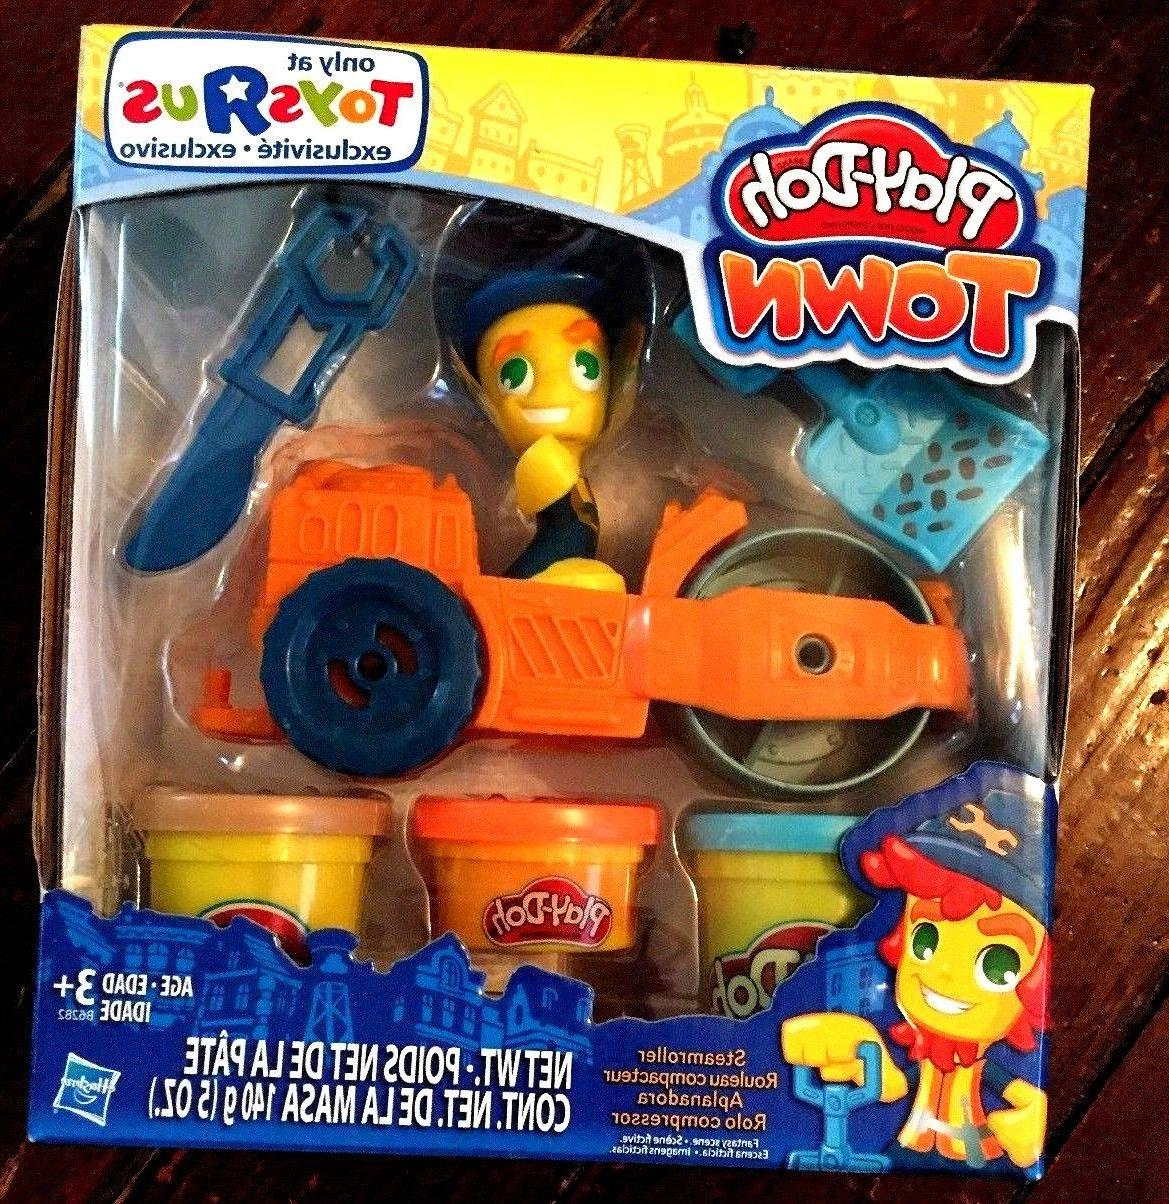 new play doh play set steamroller construction